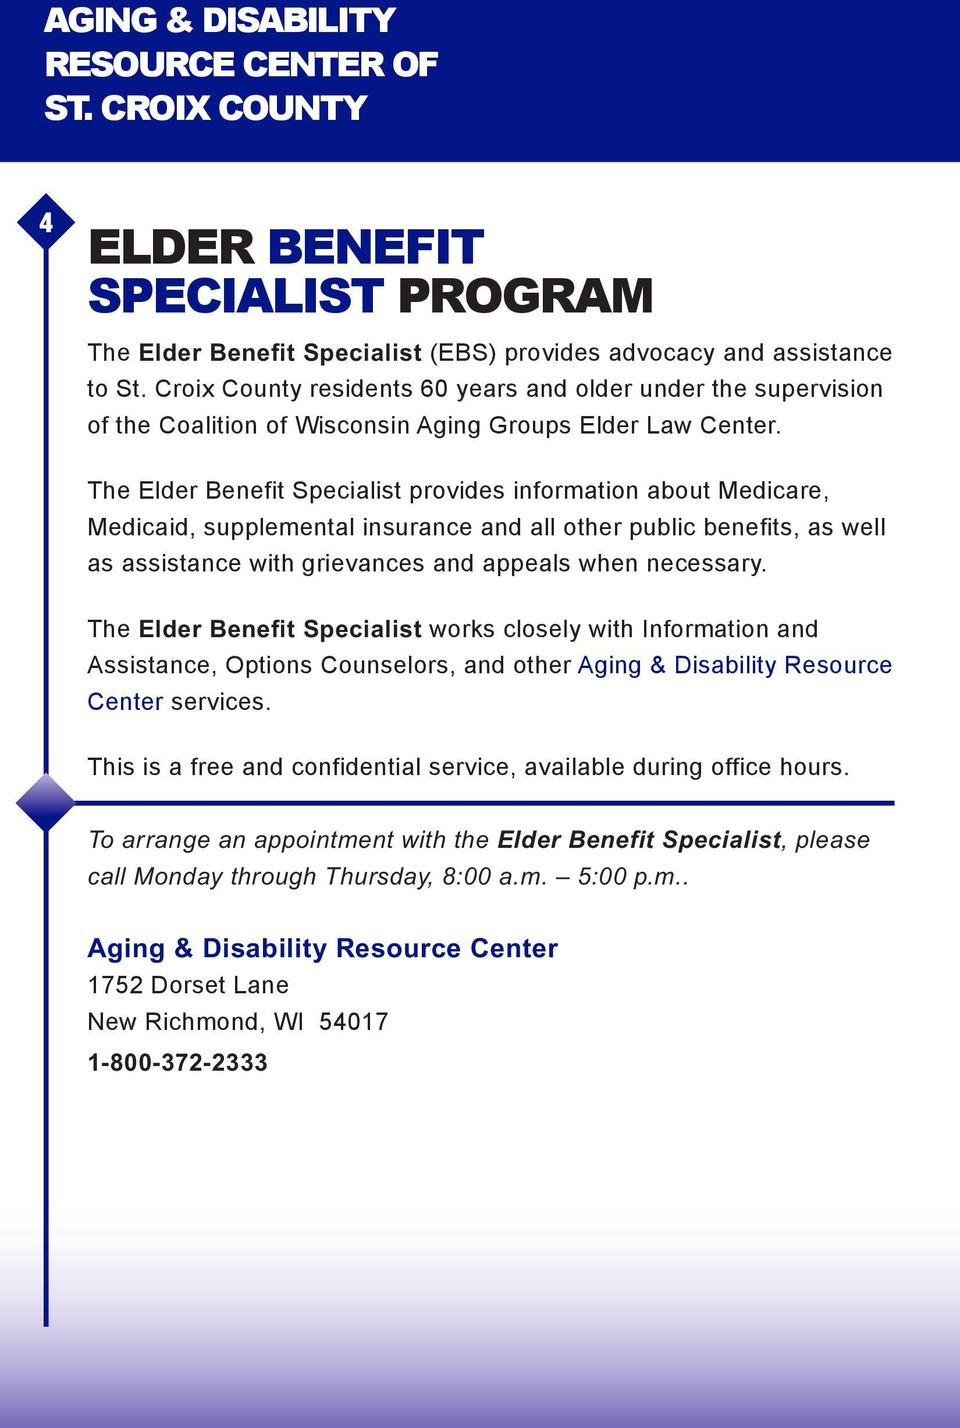 The Elder Benefit Specialist provides information about Medicare, Medicaid, supplemental insurance and all other public benefits, as well as assistance with grievances and appeals when